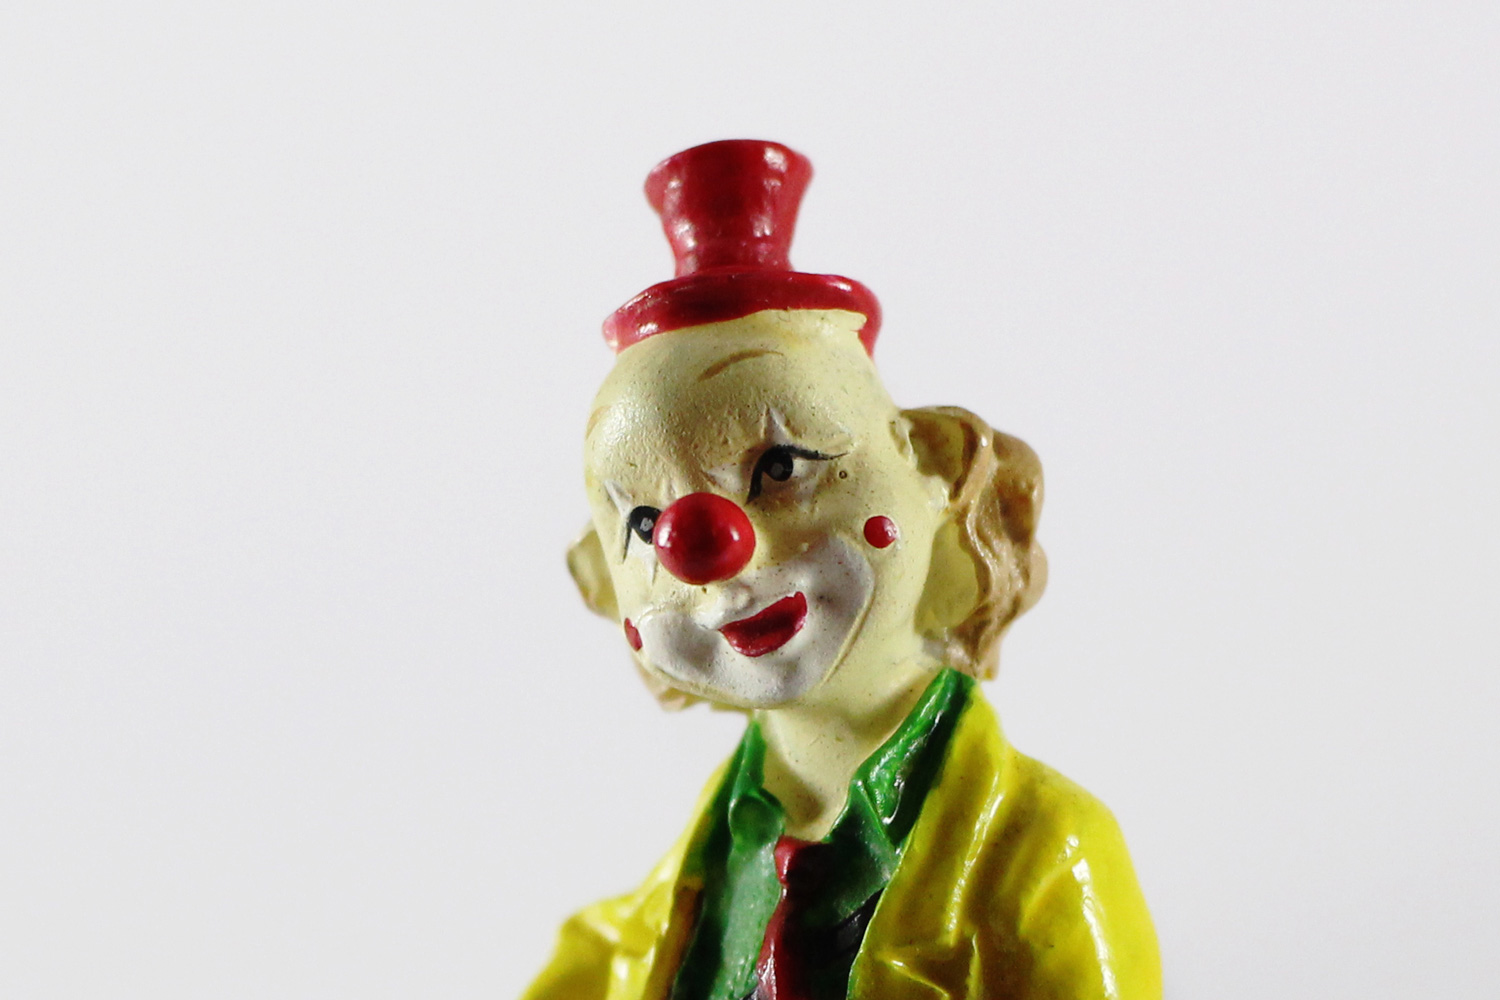 Why do clowns creep us out?